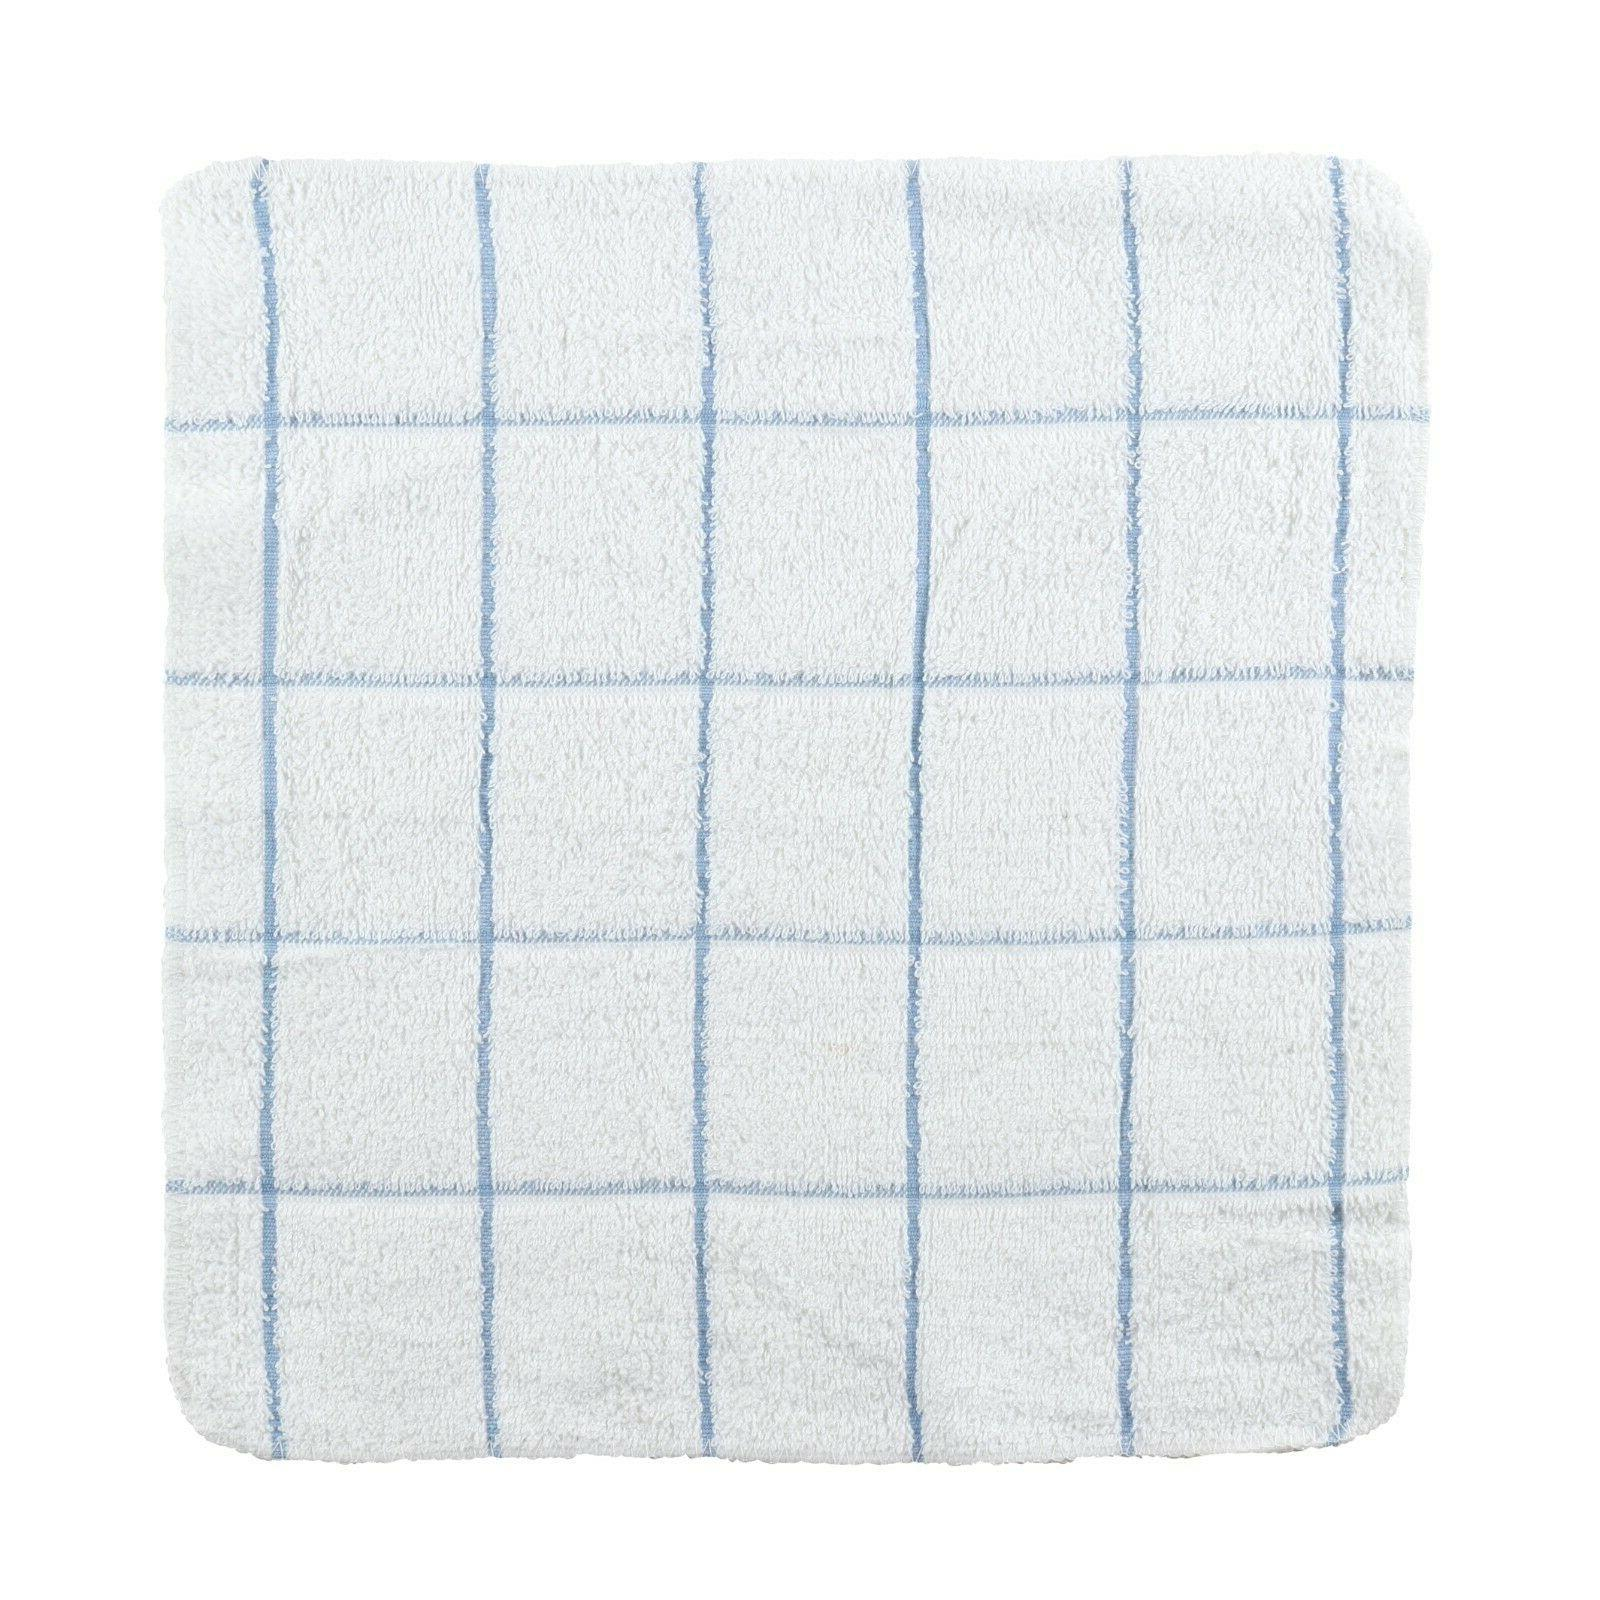 12 Dishcloths - 12 Absorbent Terry Kitchen Cleaning